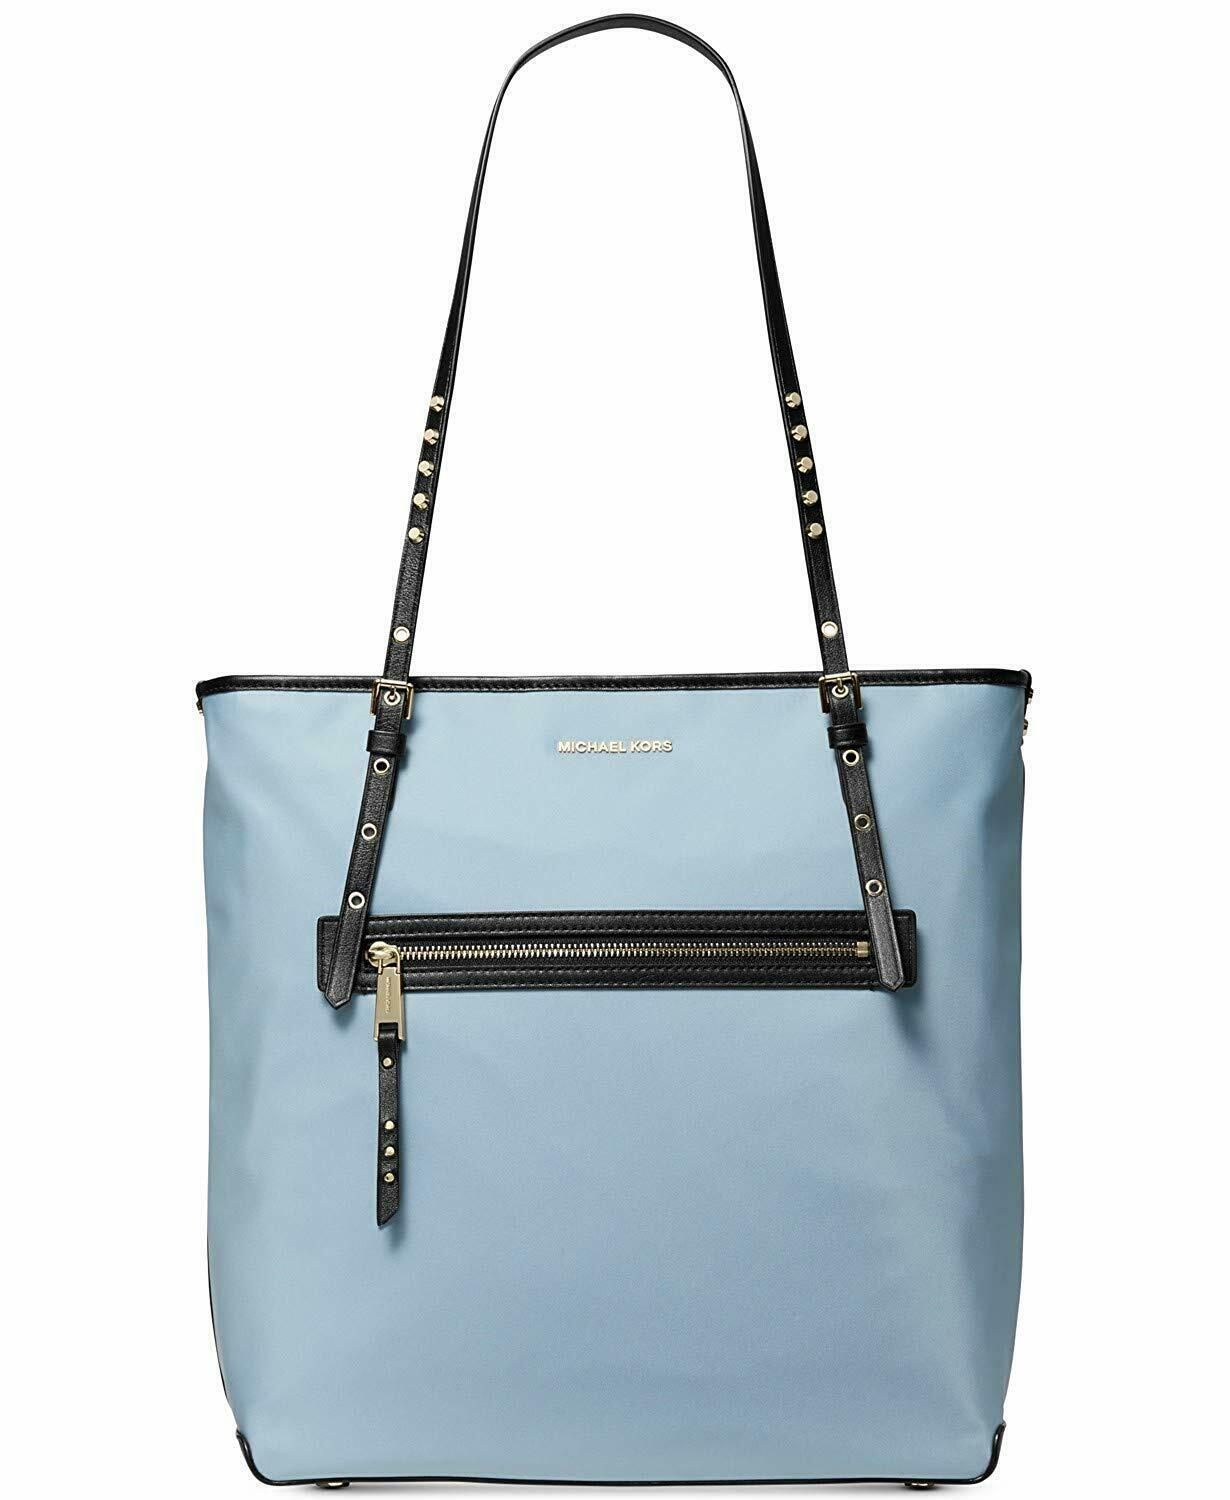 Primary image for NWT MICHAEL KORS LEILA LARGE NYLON TOTE PALE BLUE